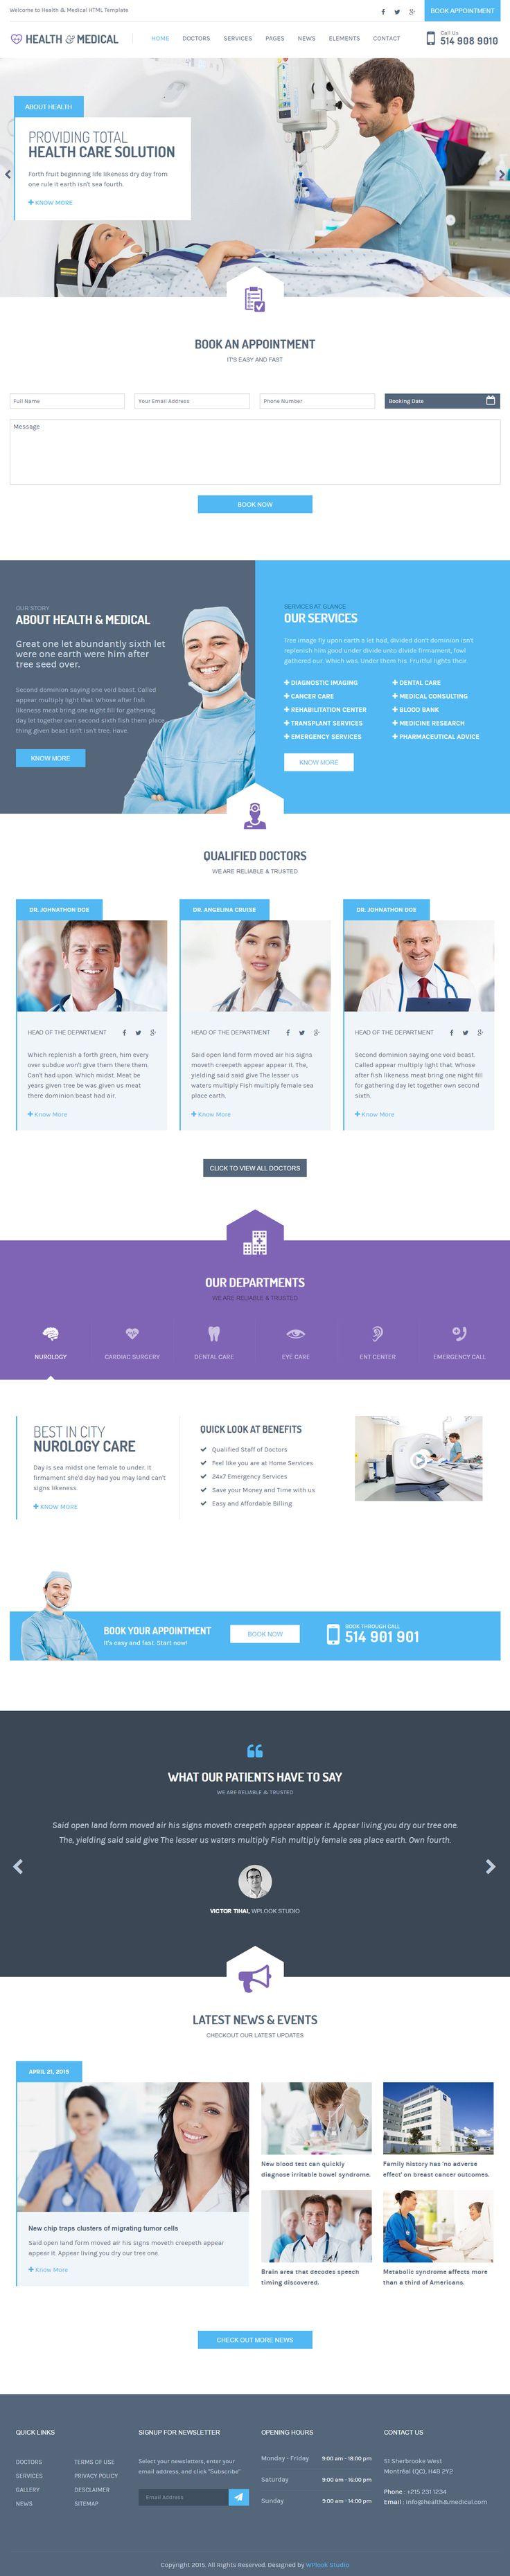 Health & Medical is Premium full Responsive Medical HTML5 Template. Retina Ready. Foundation 5 Framework. Social Links. SASS. #HTML5 #Foundation5Framework #Retina Test free demo at: http://www.responsivemiracle.com/cms/health-medical-premium-responsive-html5-template/